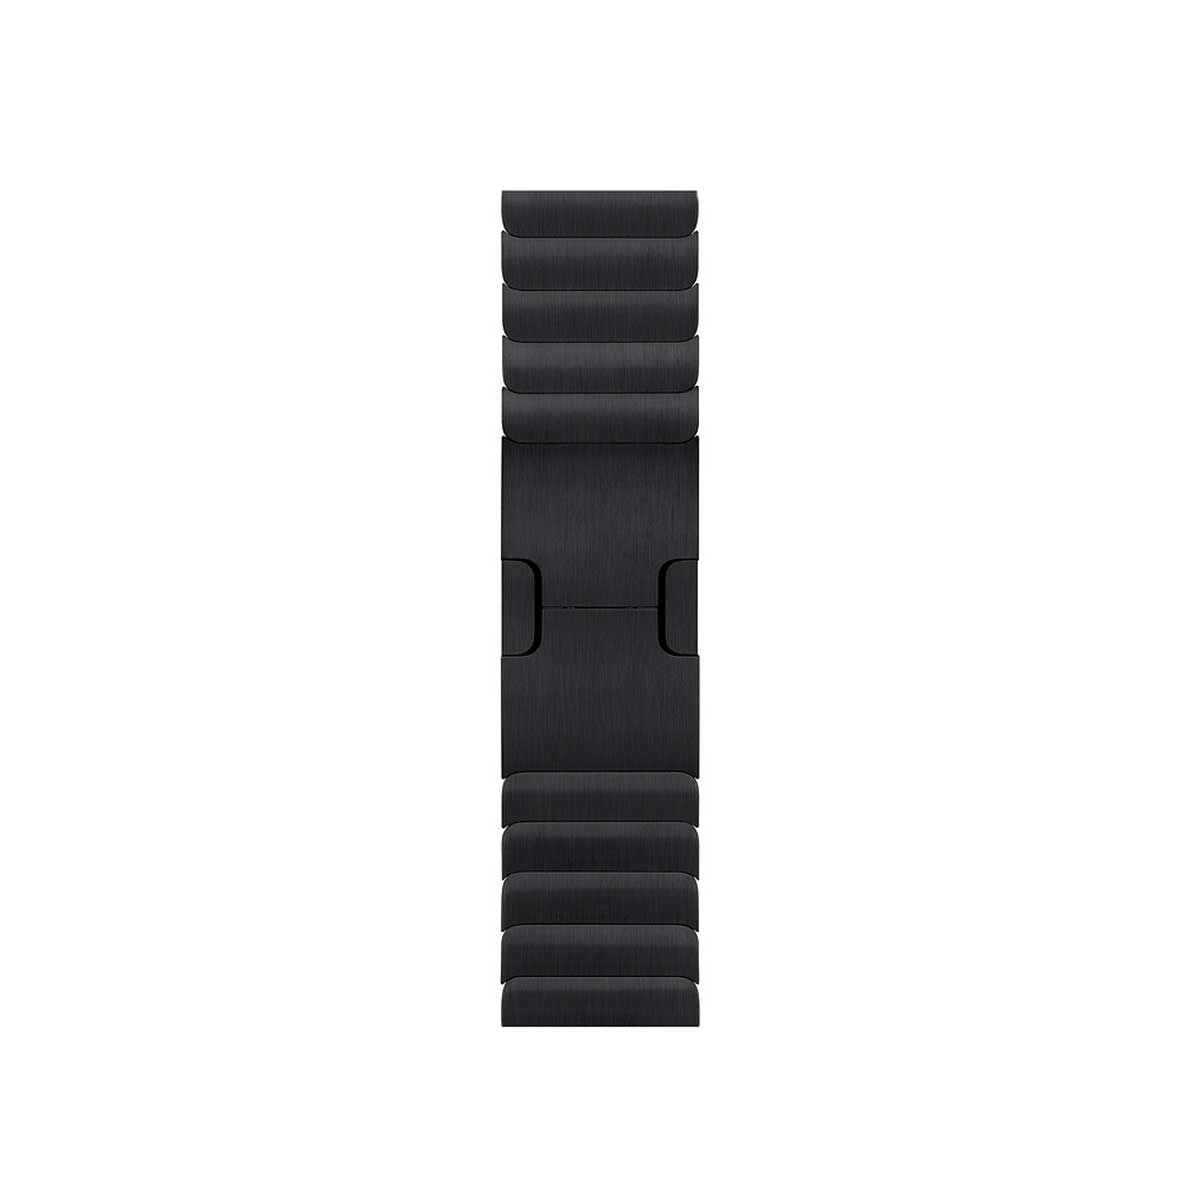 42mm Space Black Link Bracelet